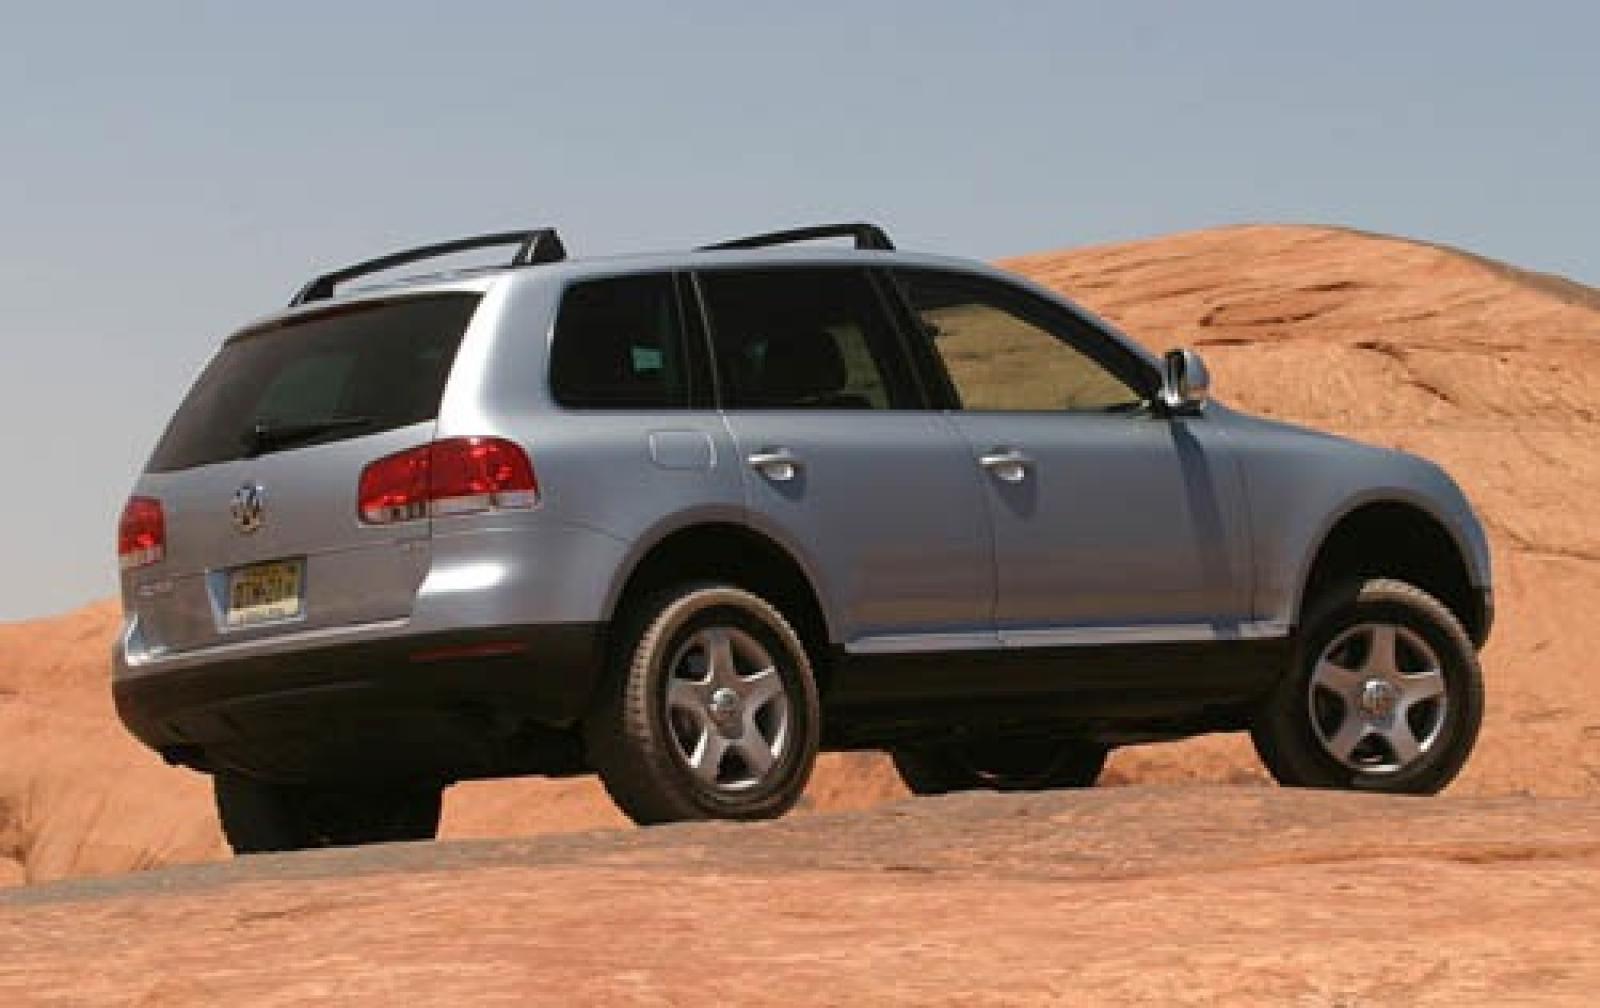 2005 volkswagen touareg information and photos zombiedrive. Black Bedroom Furniture Sets. Home Design Ideas